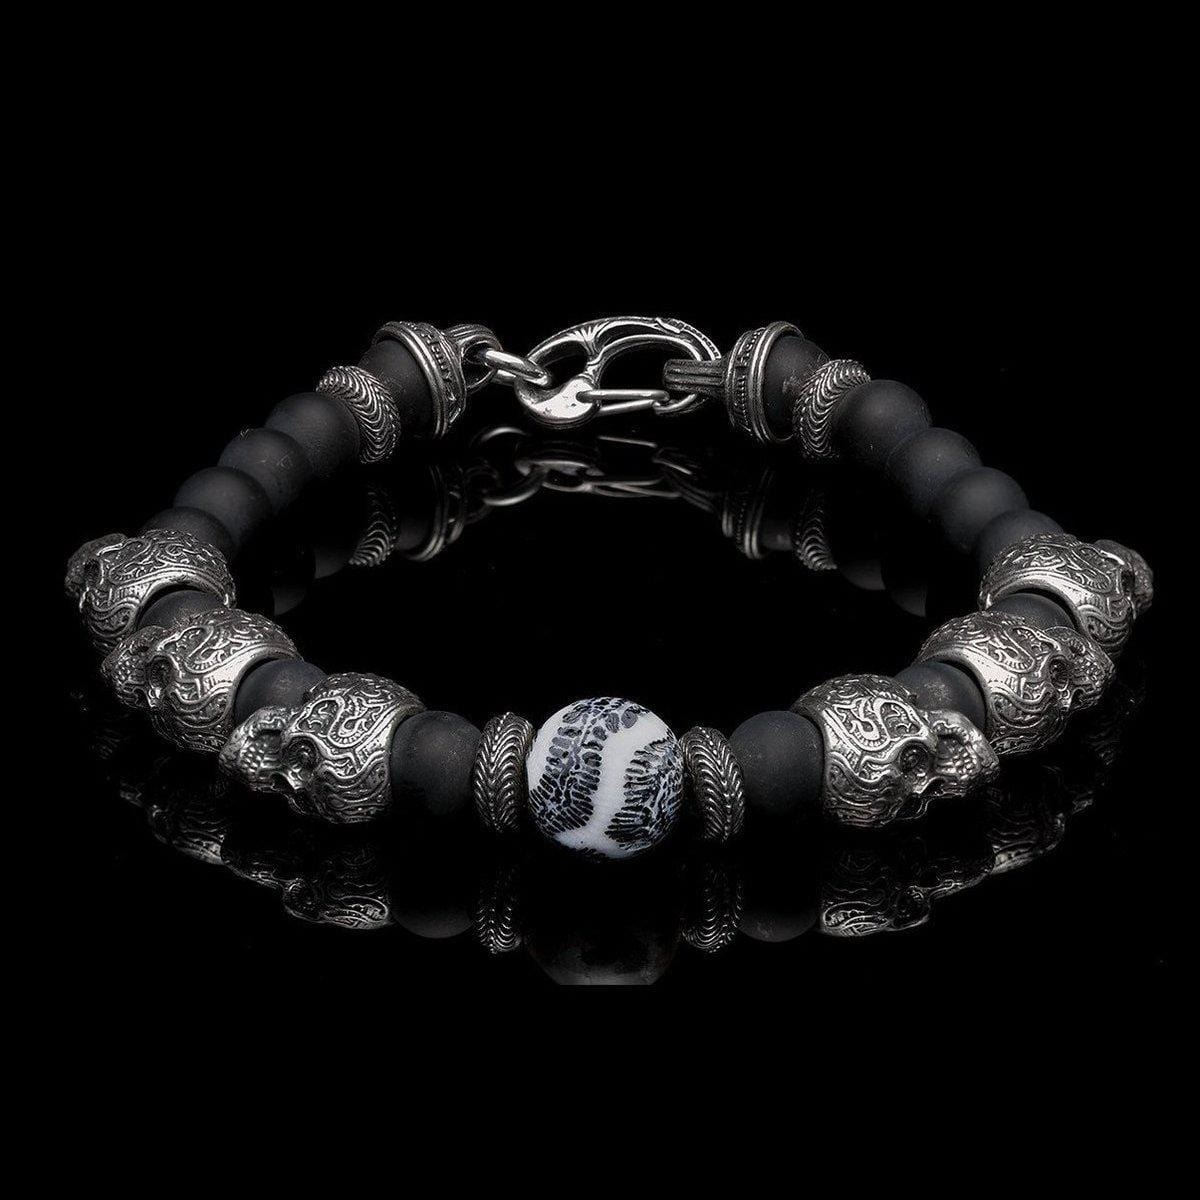 Men's Shipwreck Bracelet - BB5 FC-William Henry-Renee Taylor Gallery